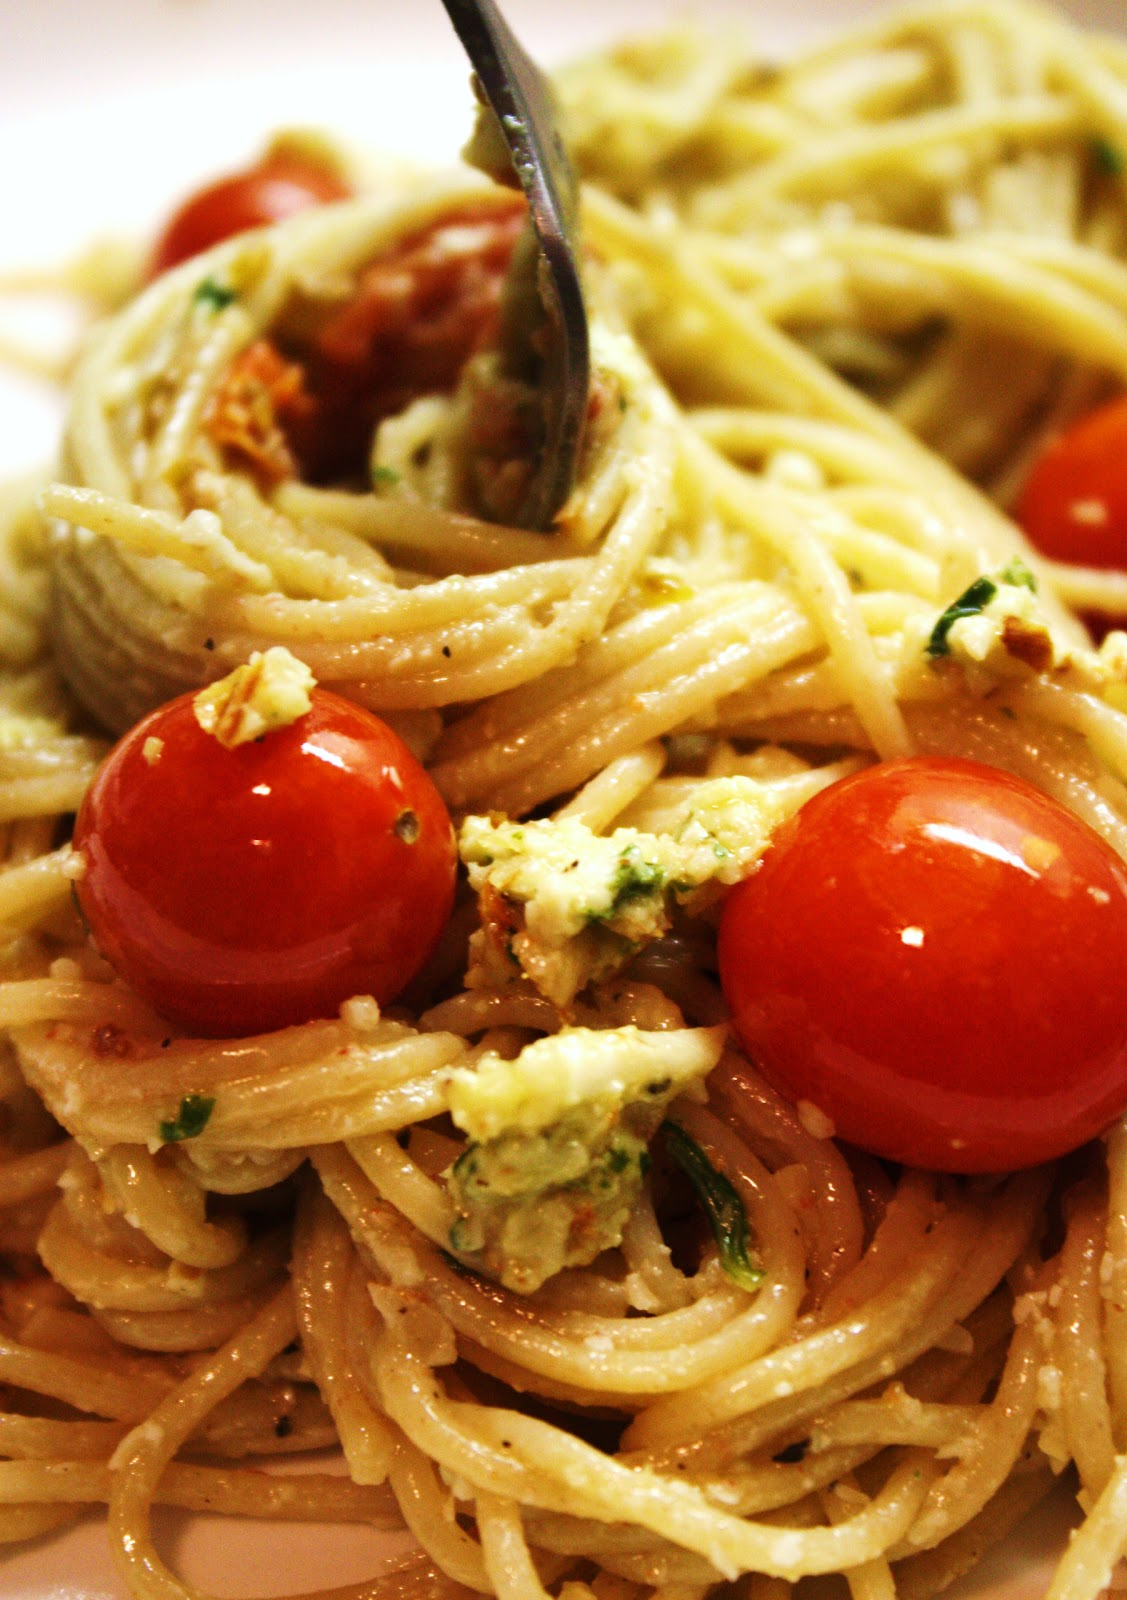 Veganess Eats: Almond Basil Pesto Pasta with Roasted Cherry Tomatoes